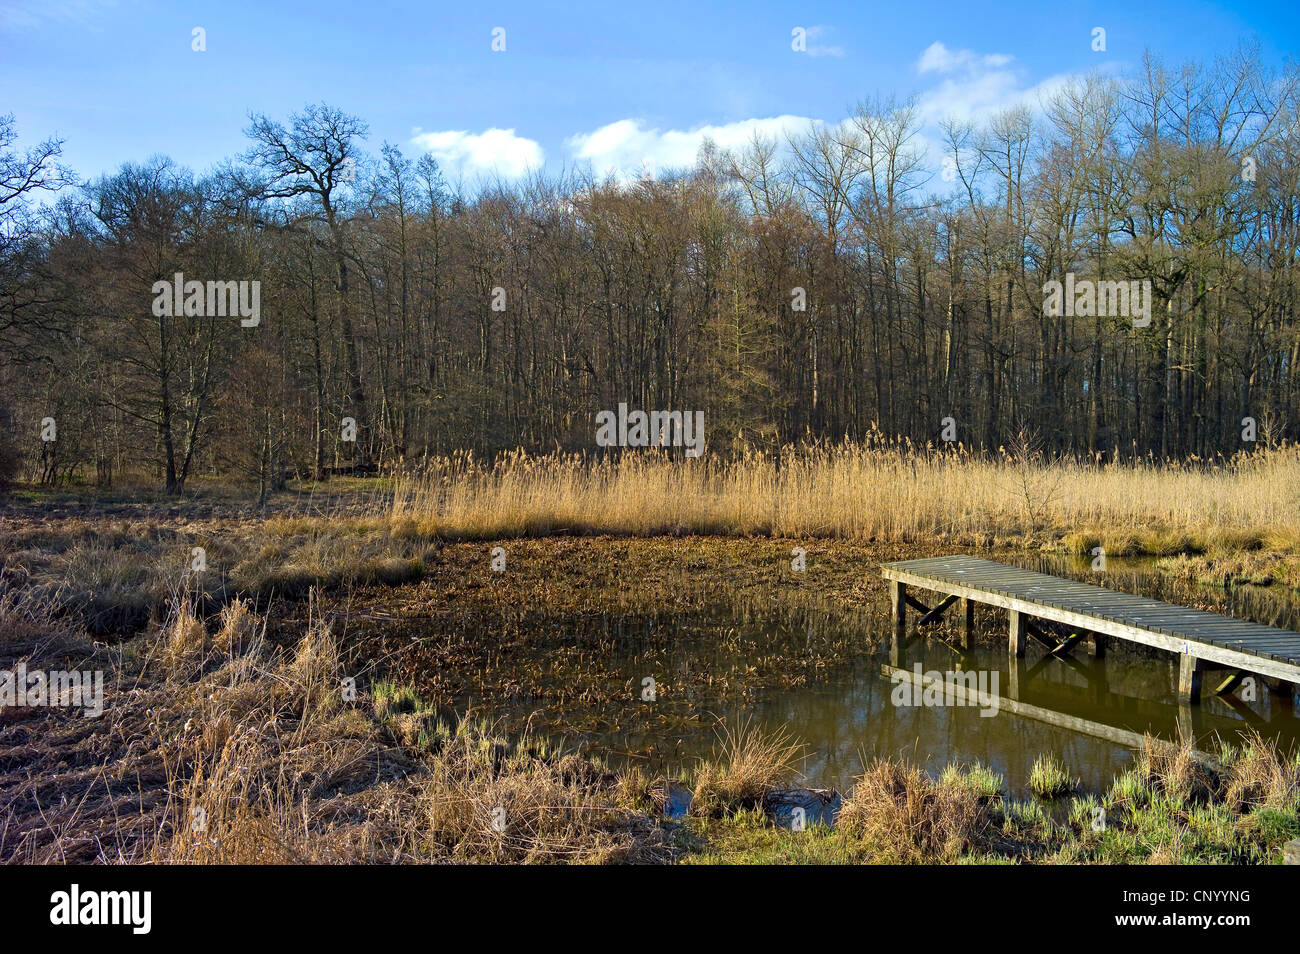 crab's-claw, water-soldier (Stratiotes aloides), silting up pond with boardwalk and water-soldier, Germany, Lower Stock Photo